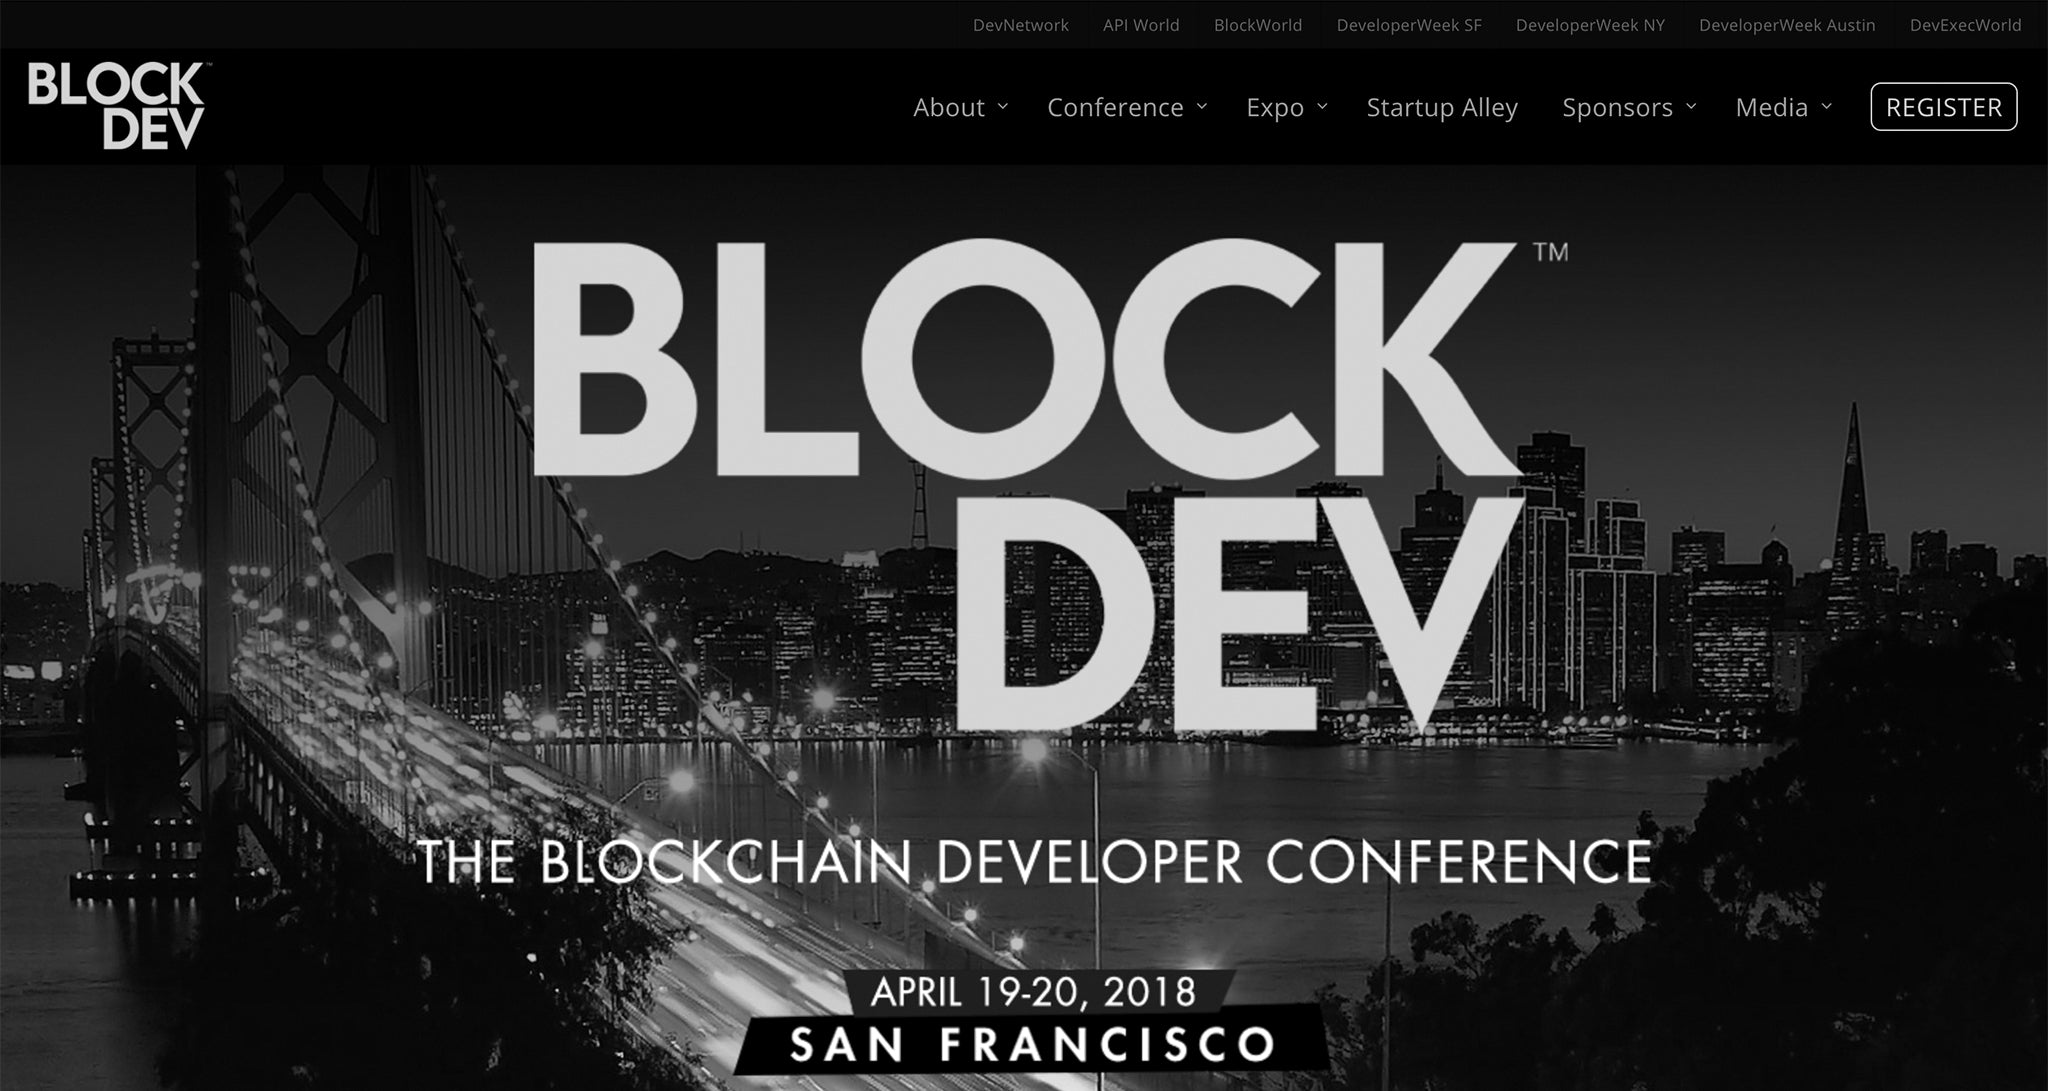 ClearFoundation to Present at BlockDev Blockchain Developer Conference April 19